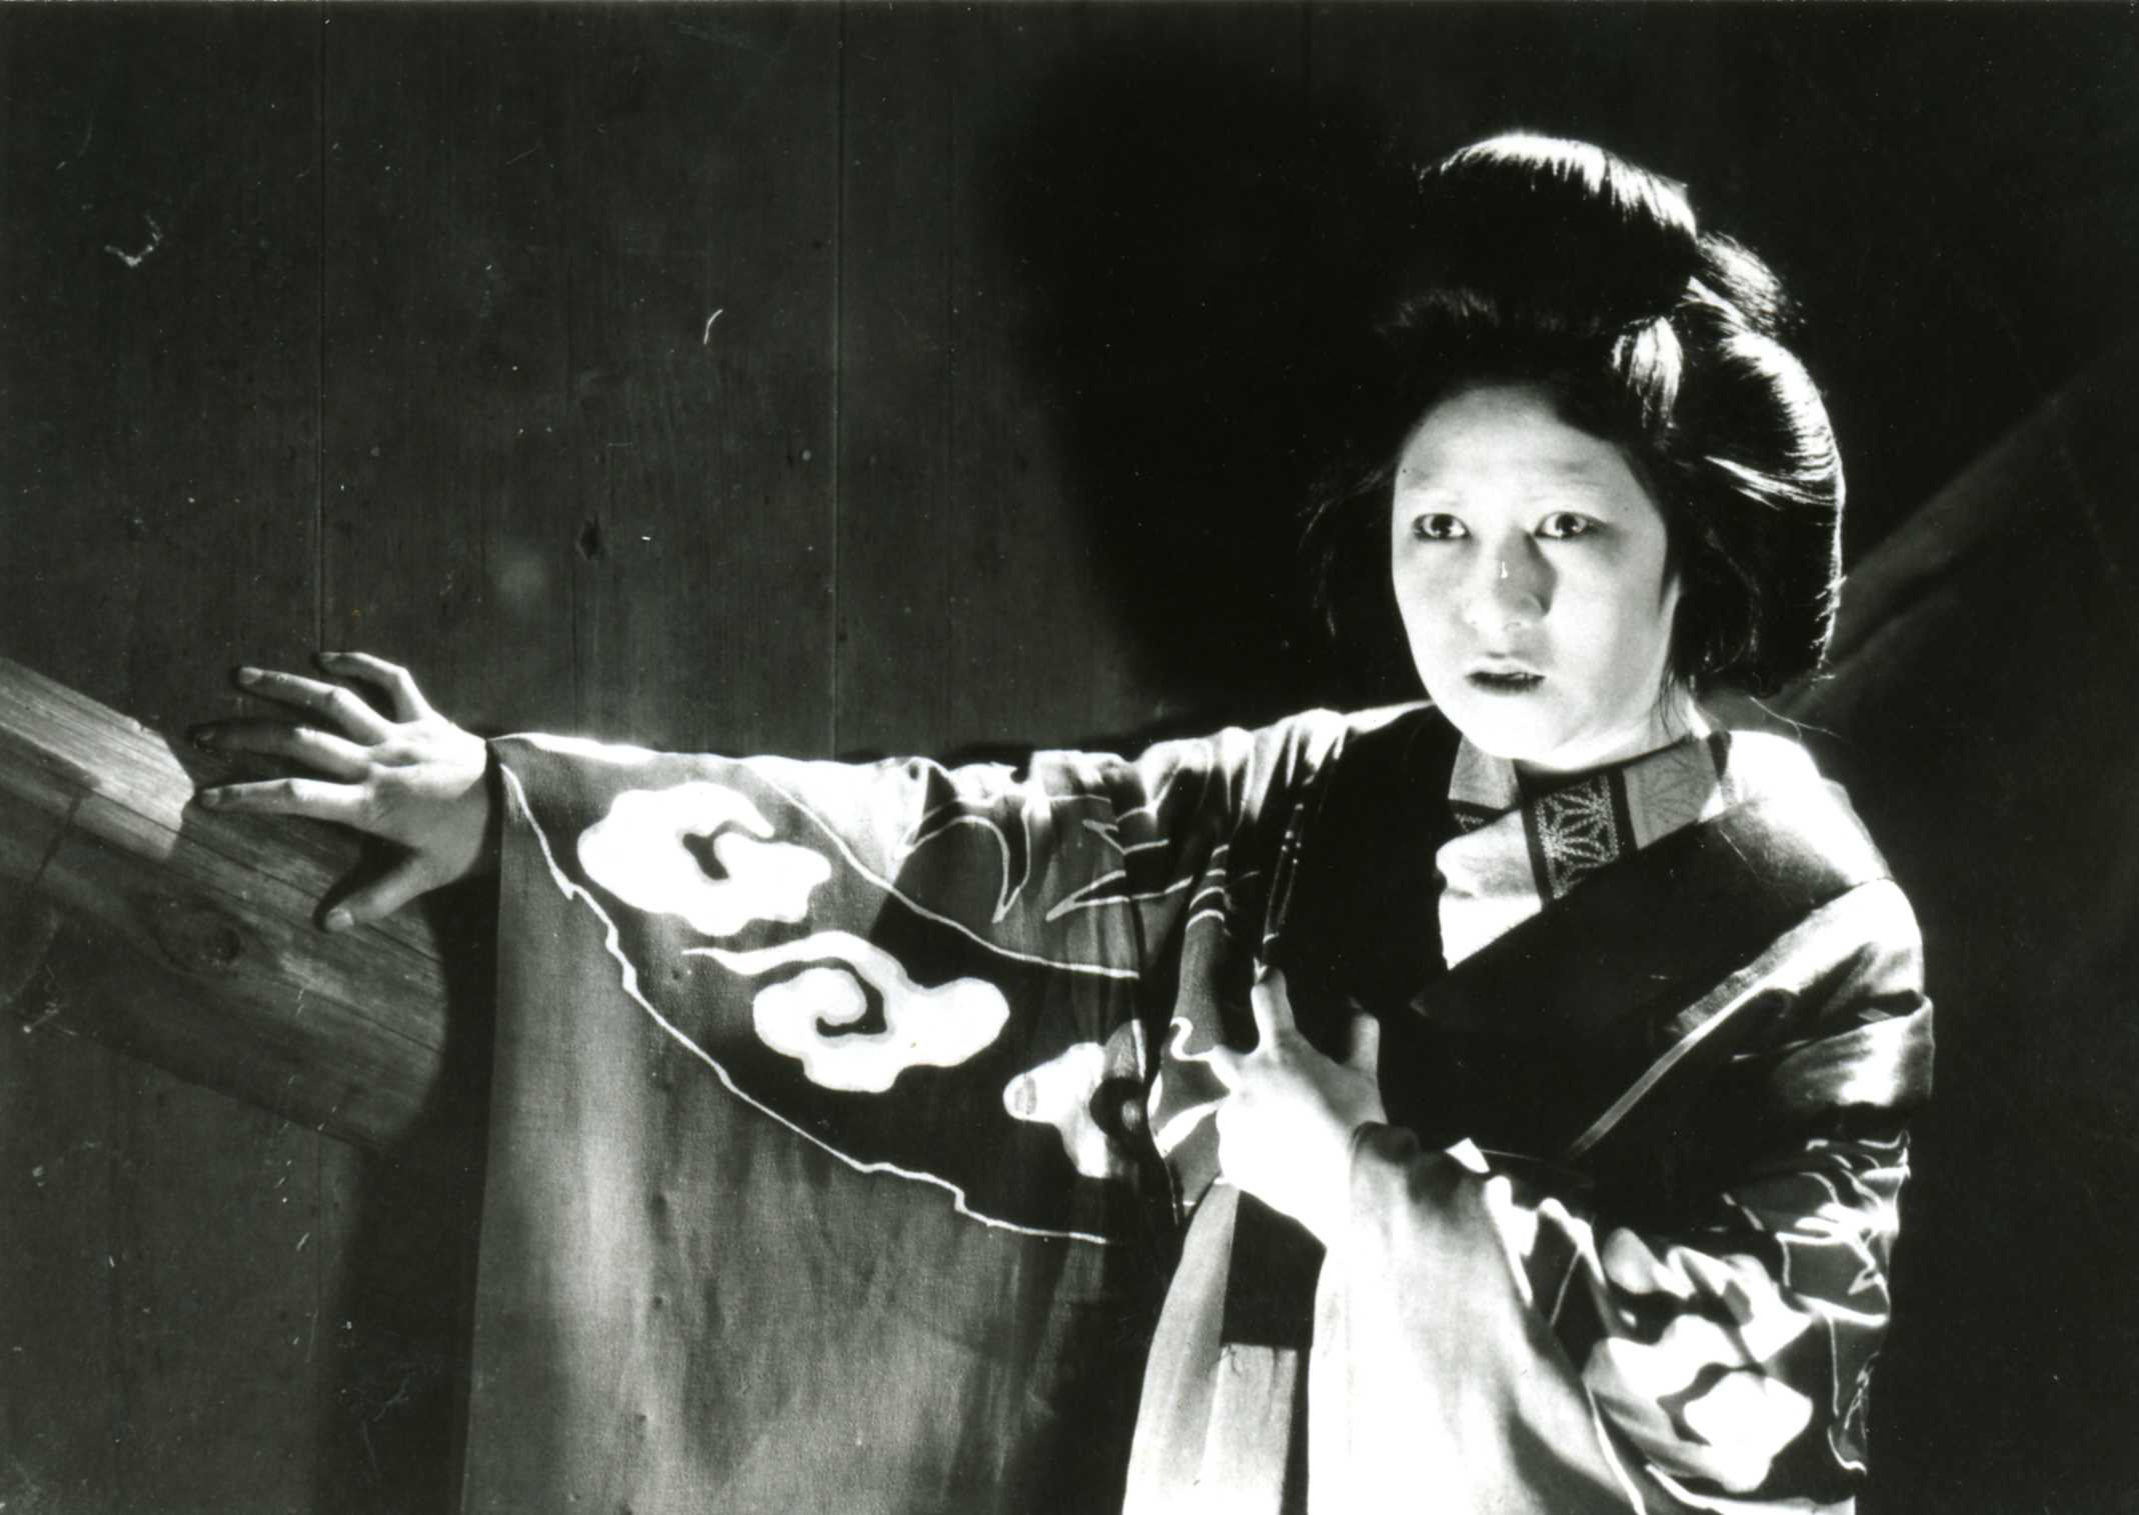 le giornate del cinema muto pordenone post no silent london chuji tabinikki jp 1927 national film center tokyo